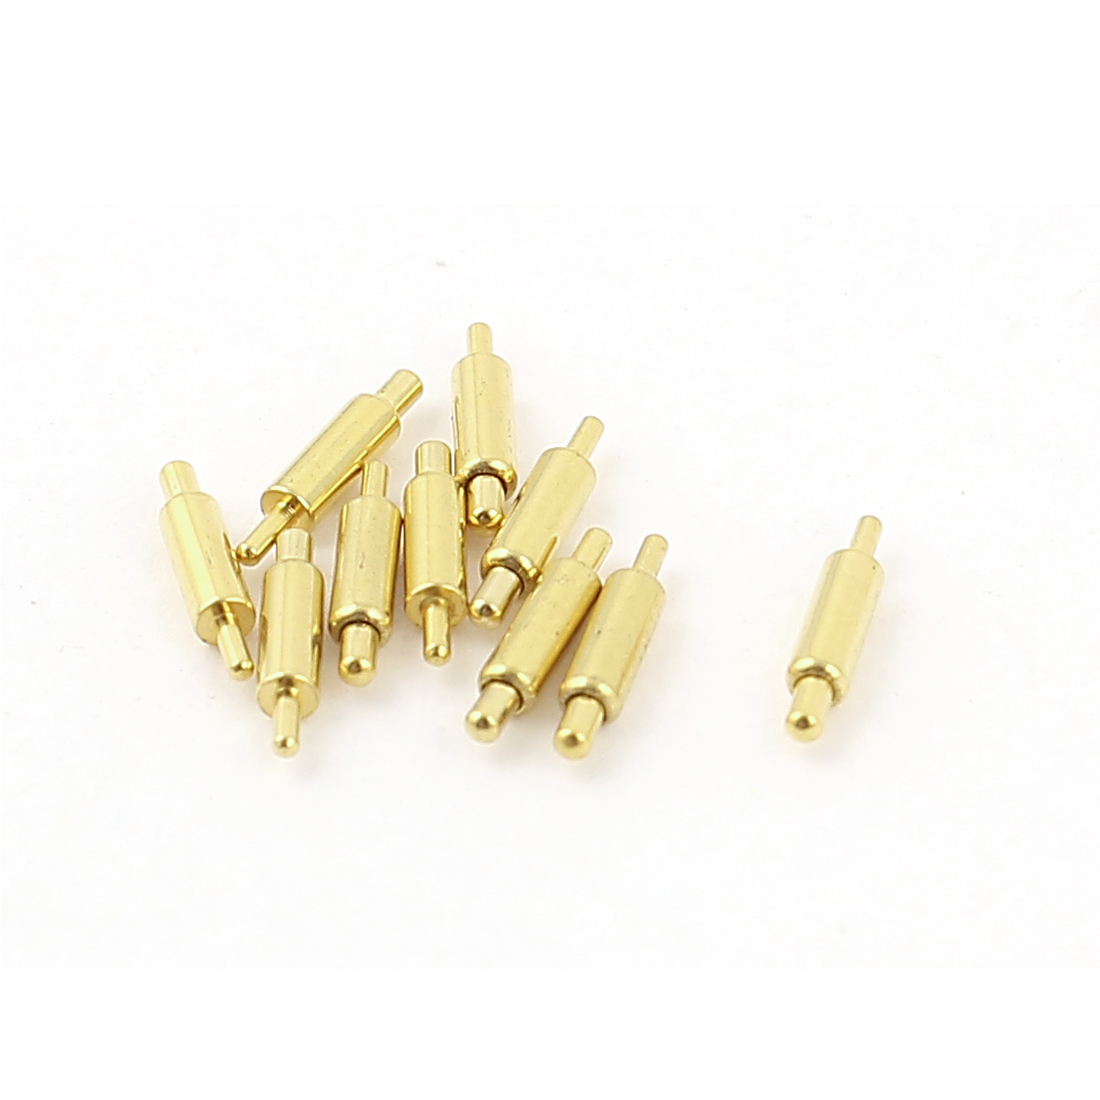 10 Pcs 0.87mm Dia Round Tip Spring Loaded Test Probes Pins